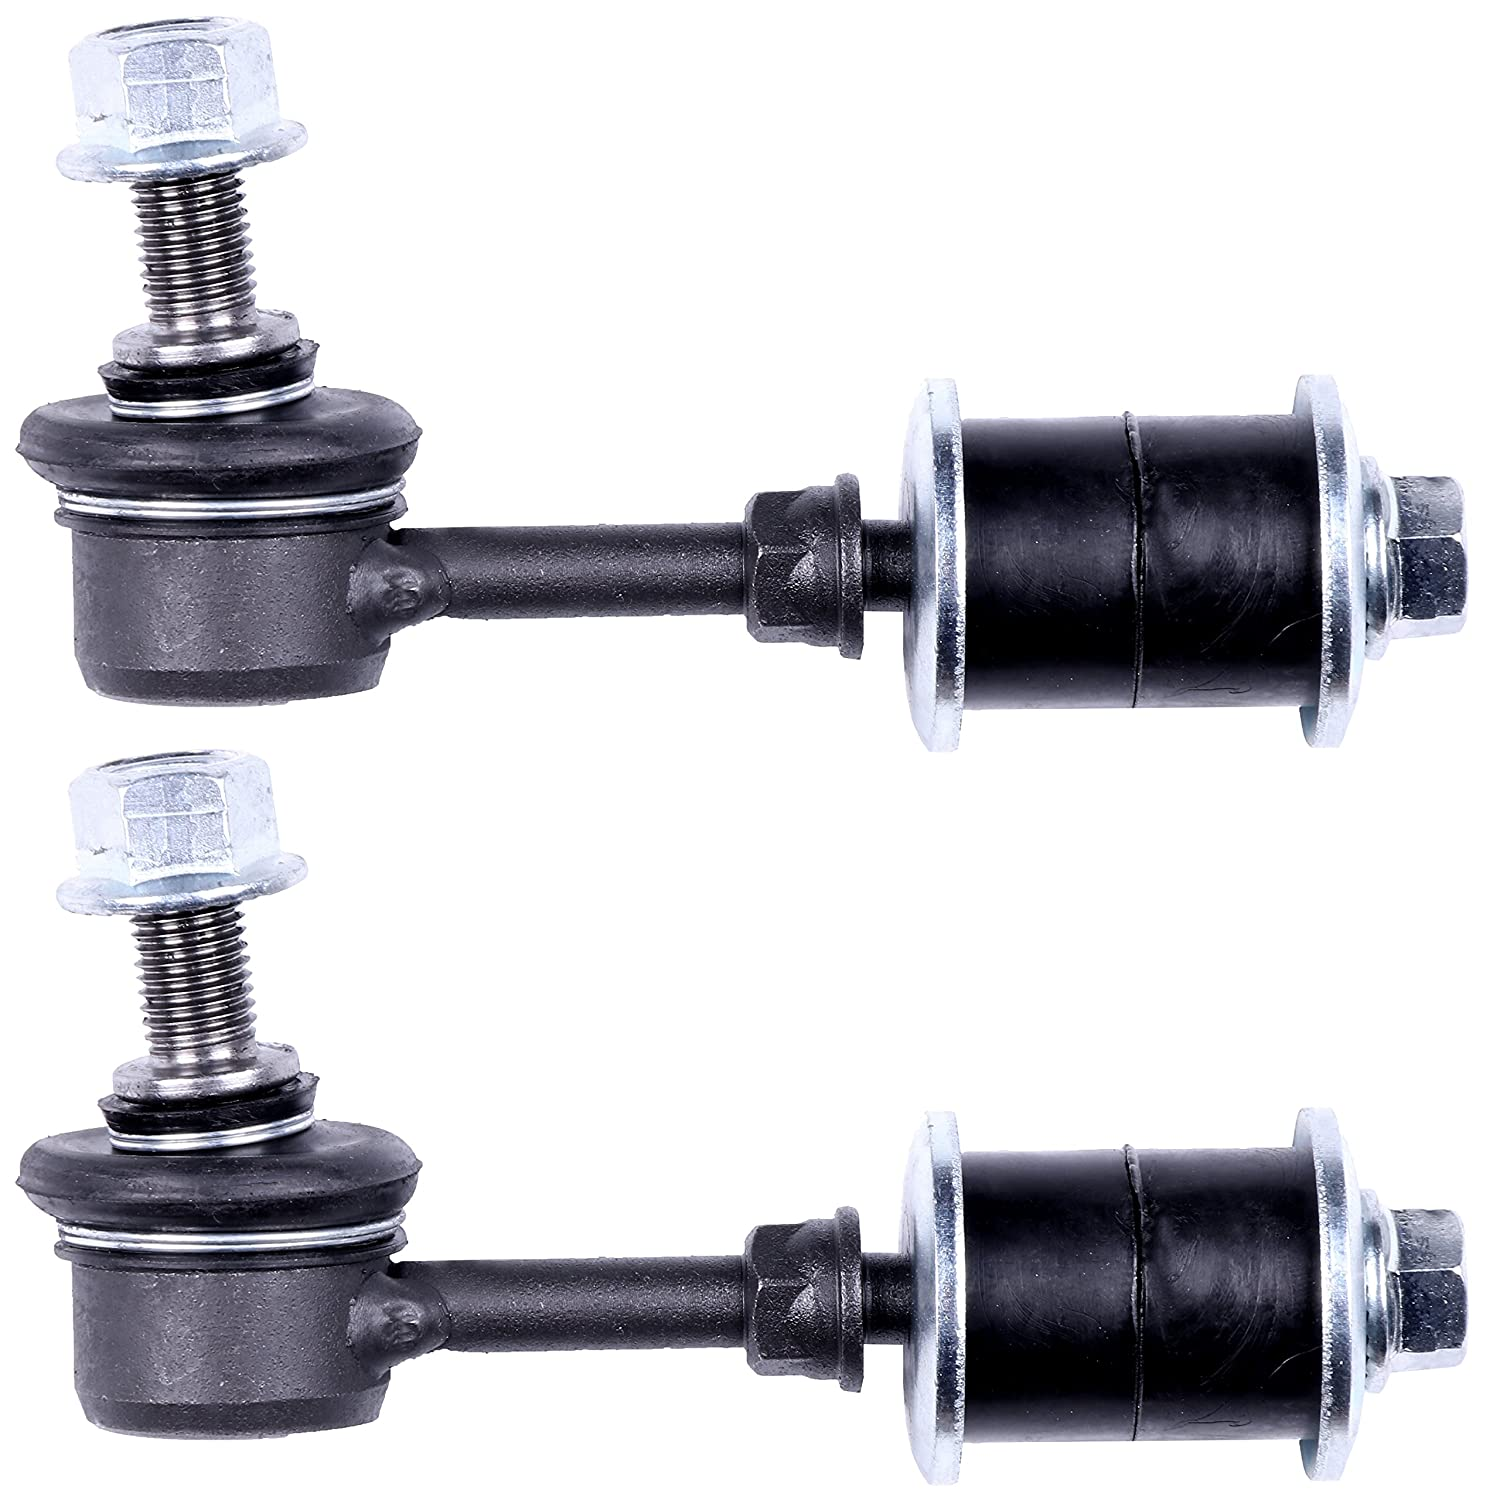 2pc ECCPP Front Sway Bar End Link Steering Link for 1997 1998 1999 2000 2001 Honda Prelude